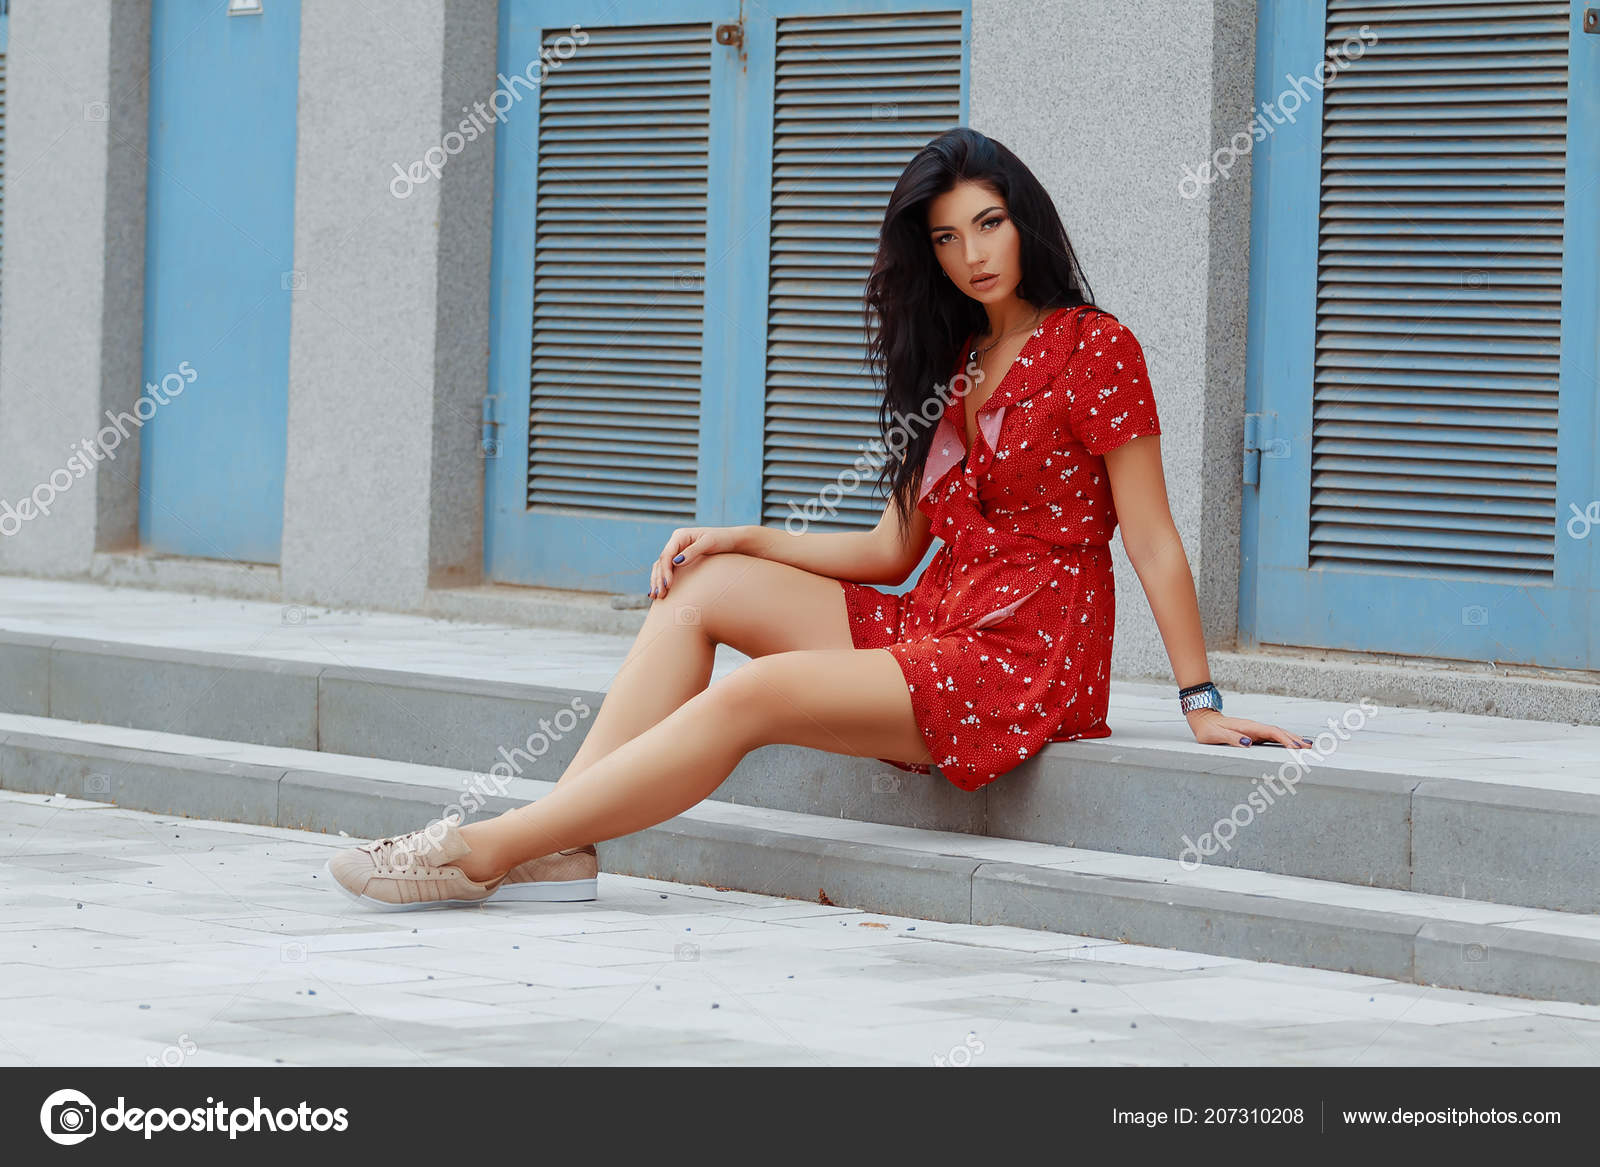 Young Brunette Girl Waiting Someone Sitting Stairs Red Short Dress